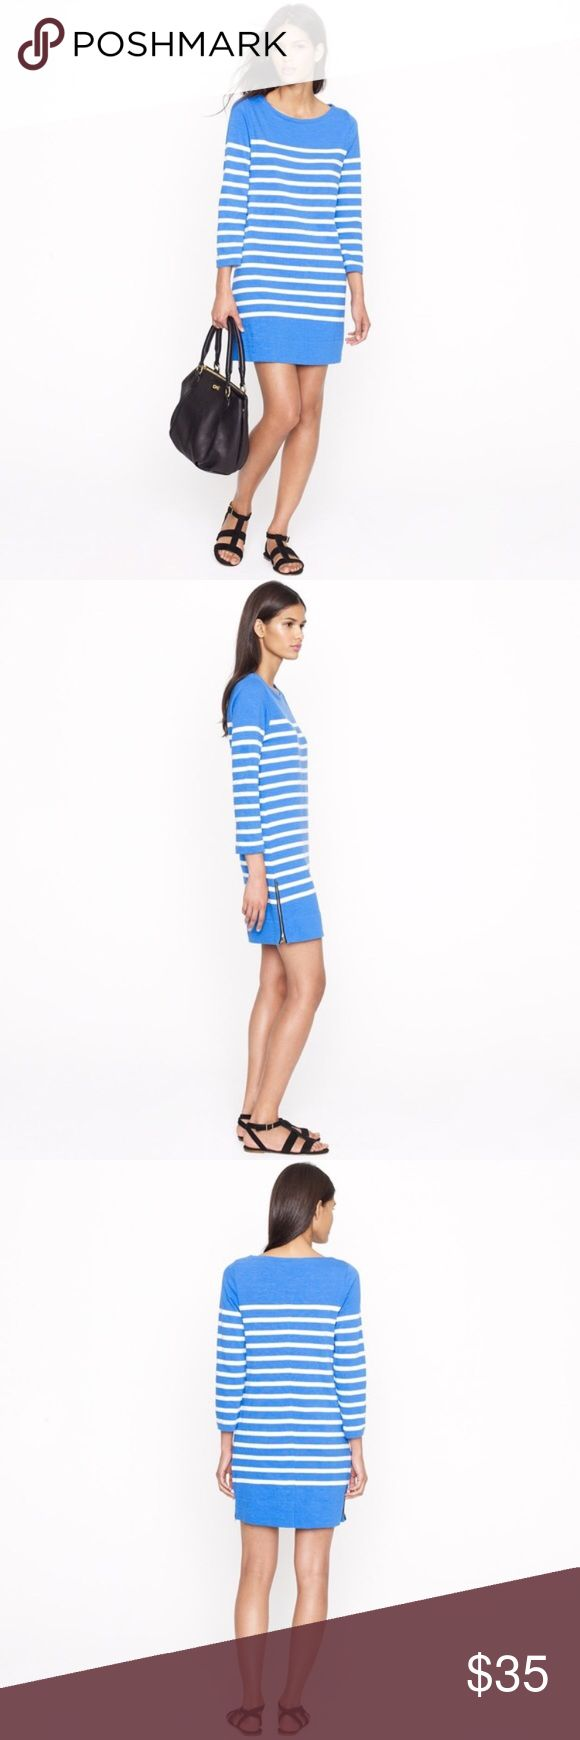 J. Crew Maritime Striped Dress Adorable blue and white striped Maritime dress with side gold zippers. Excellent condition, the perfect spring dress! 🛍Bundle 2 or more items for 20% off!! J. Crew Dresses